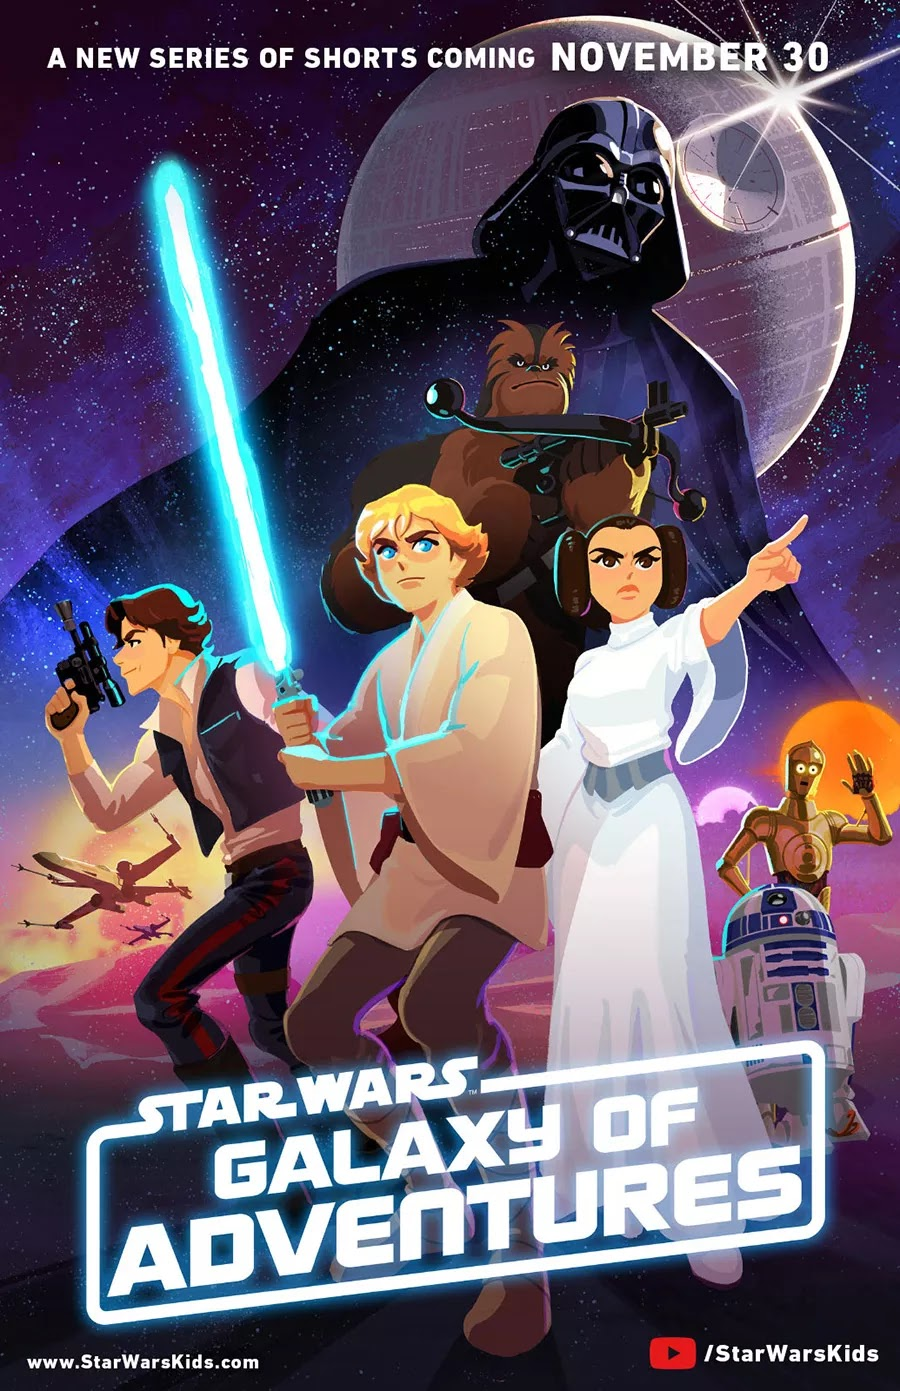 Disney Turns Classic Star Wars Films Into Animated Shorts, Launching Star Wars Kids YouTube Channel